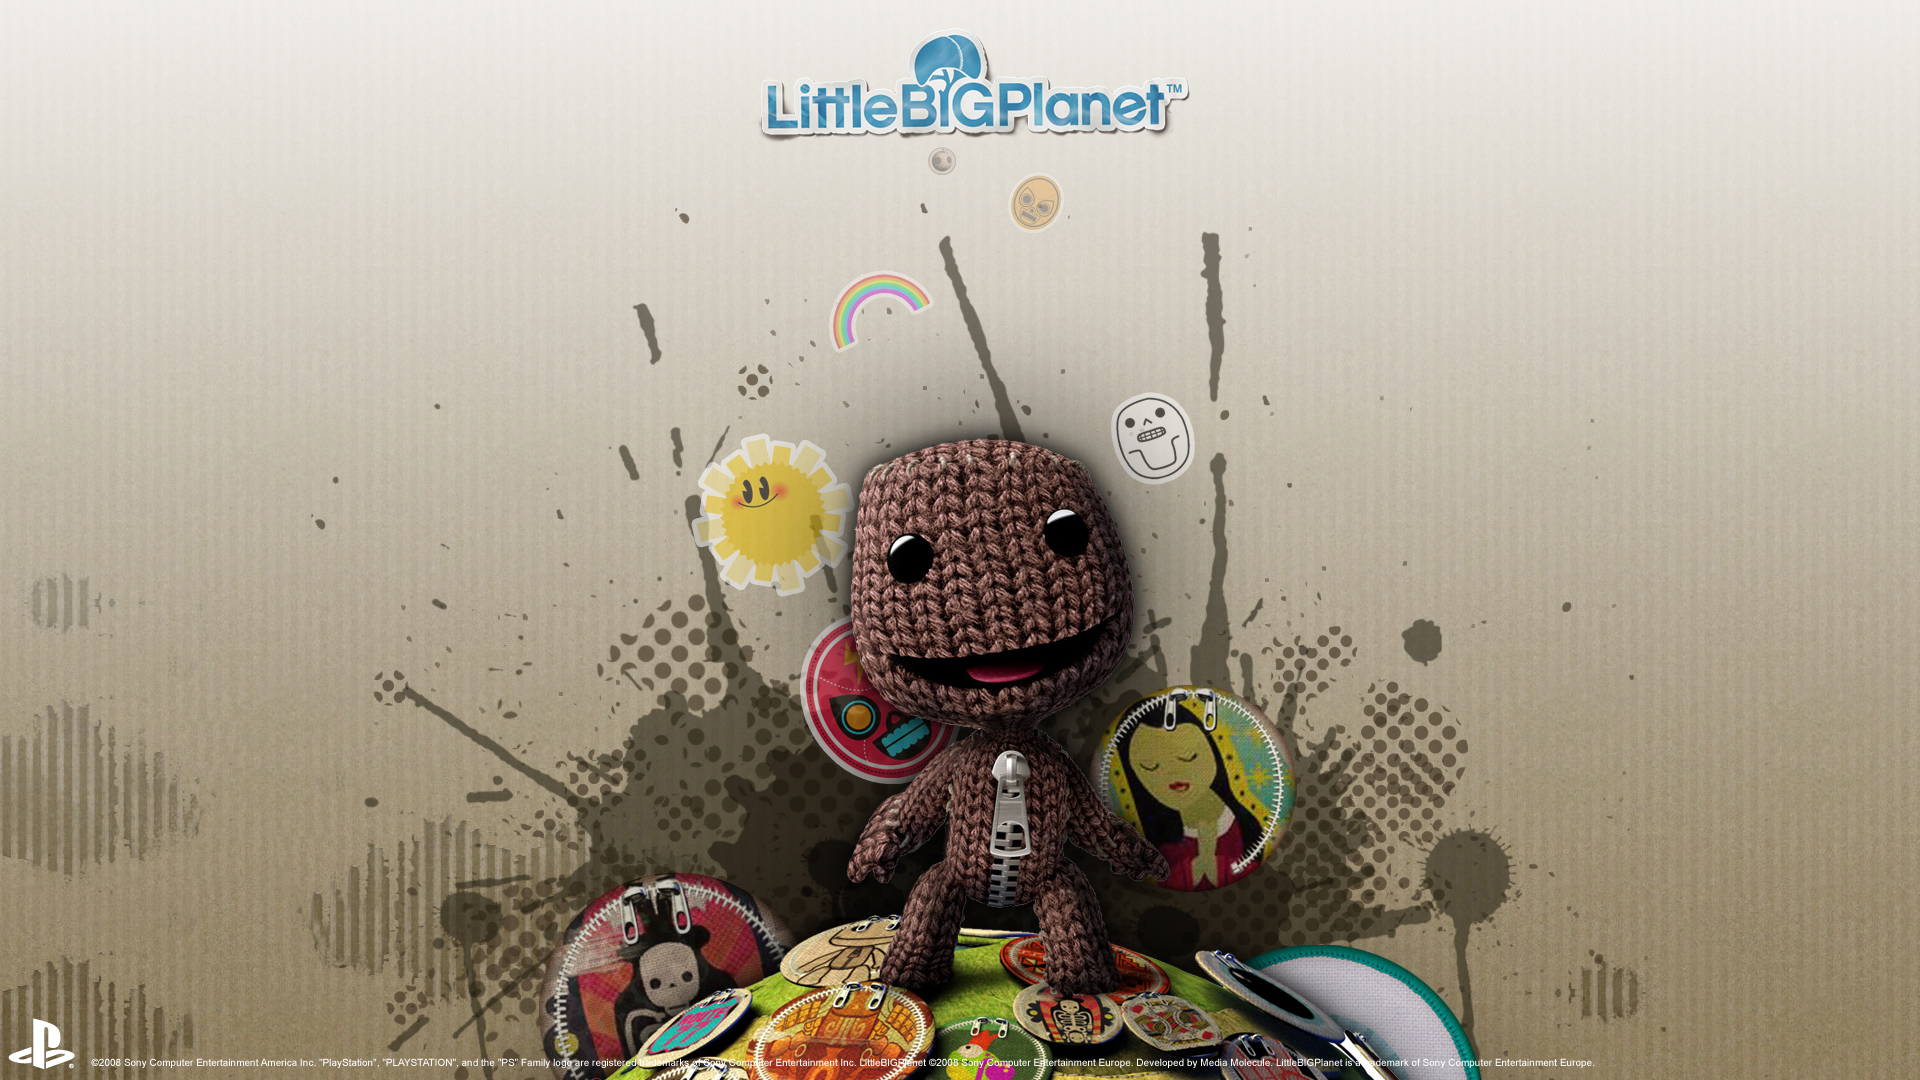 LittleBigPlanet Wallpapers